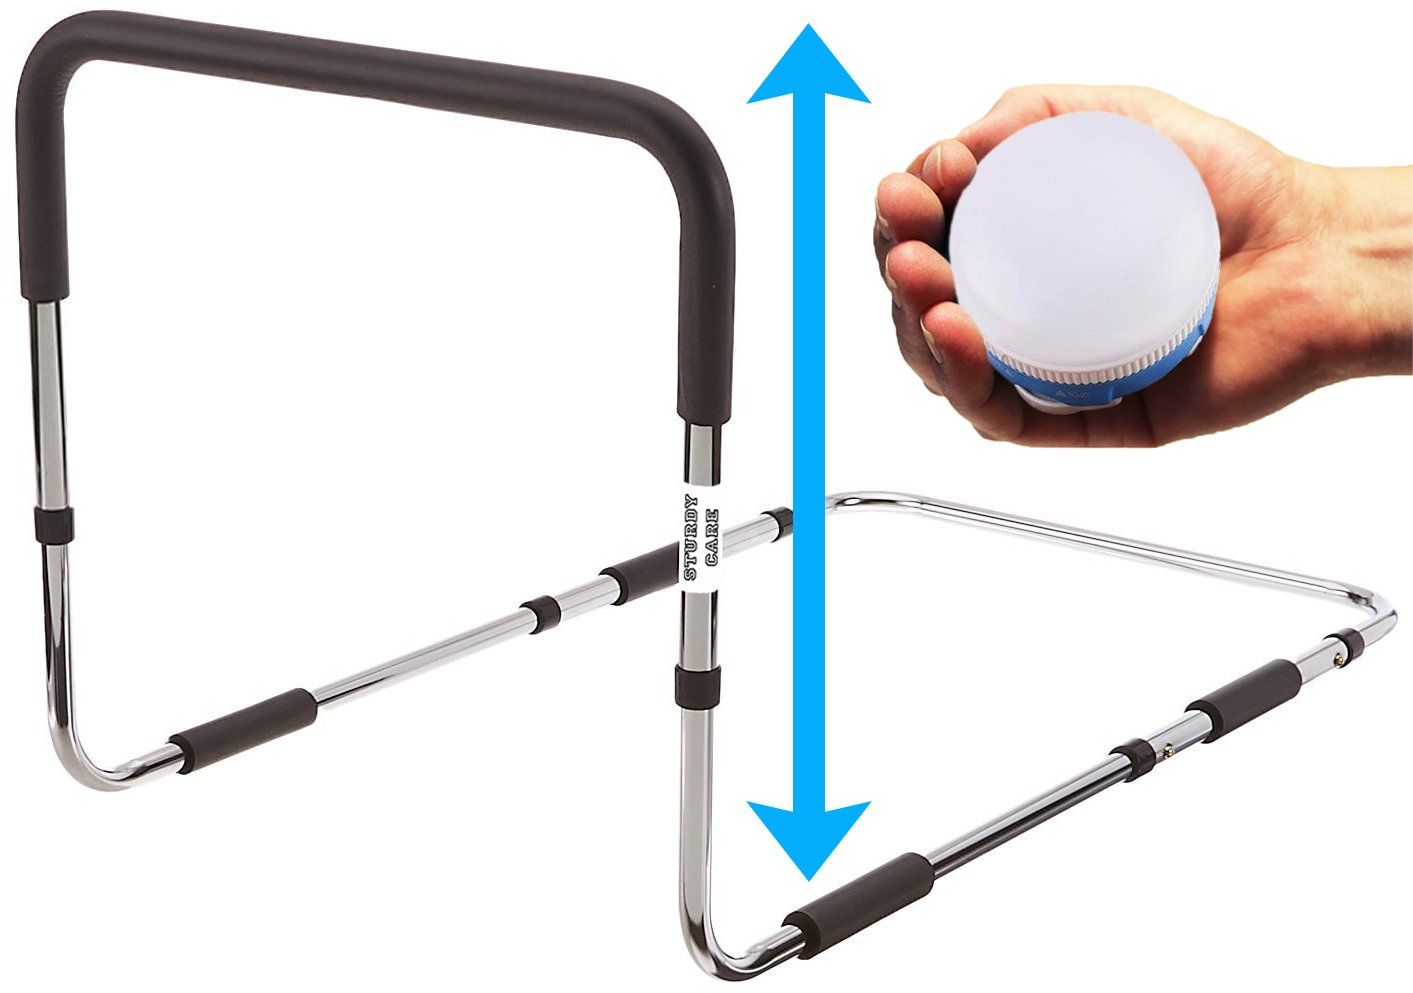 Bed Rails For Elderly with Bonus Magnetic Nightlight | Fits All Bed Sizes | Medical Grade Side Safety Support Guard for Adults Seniors Fall Prevention